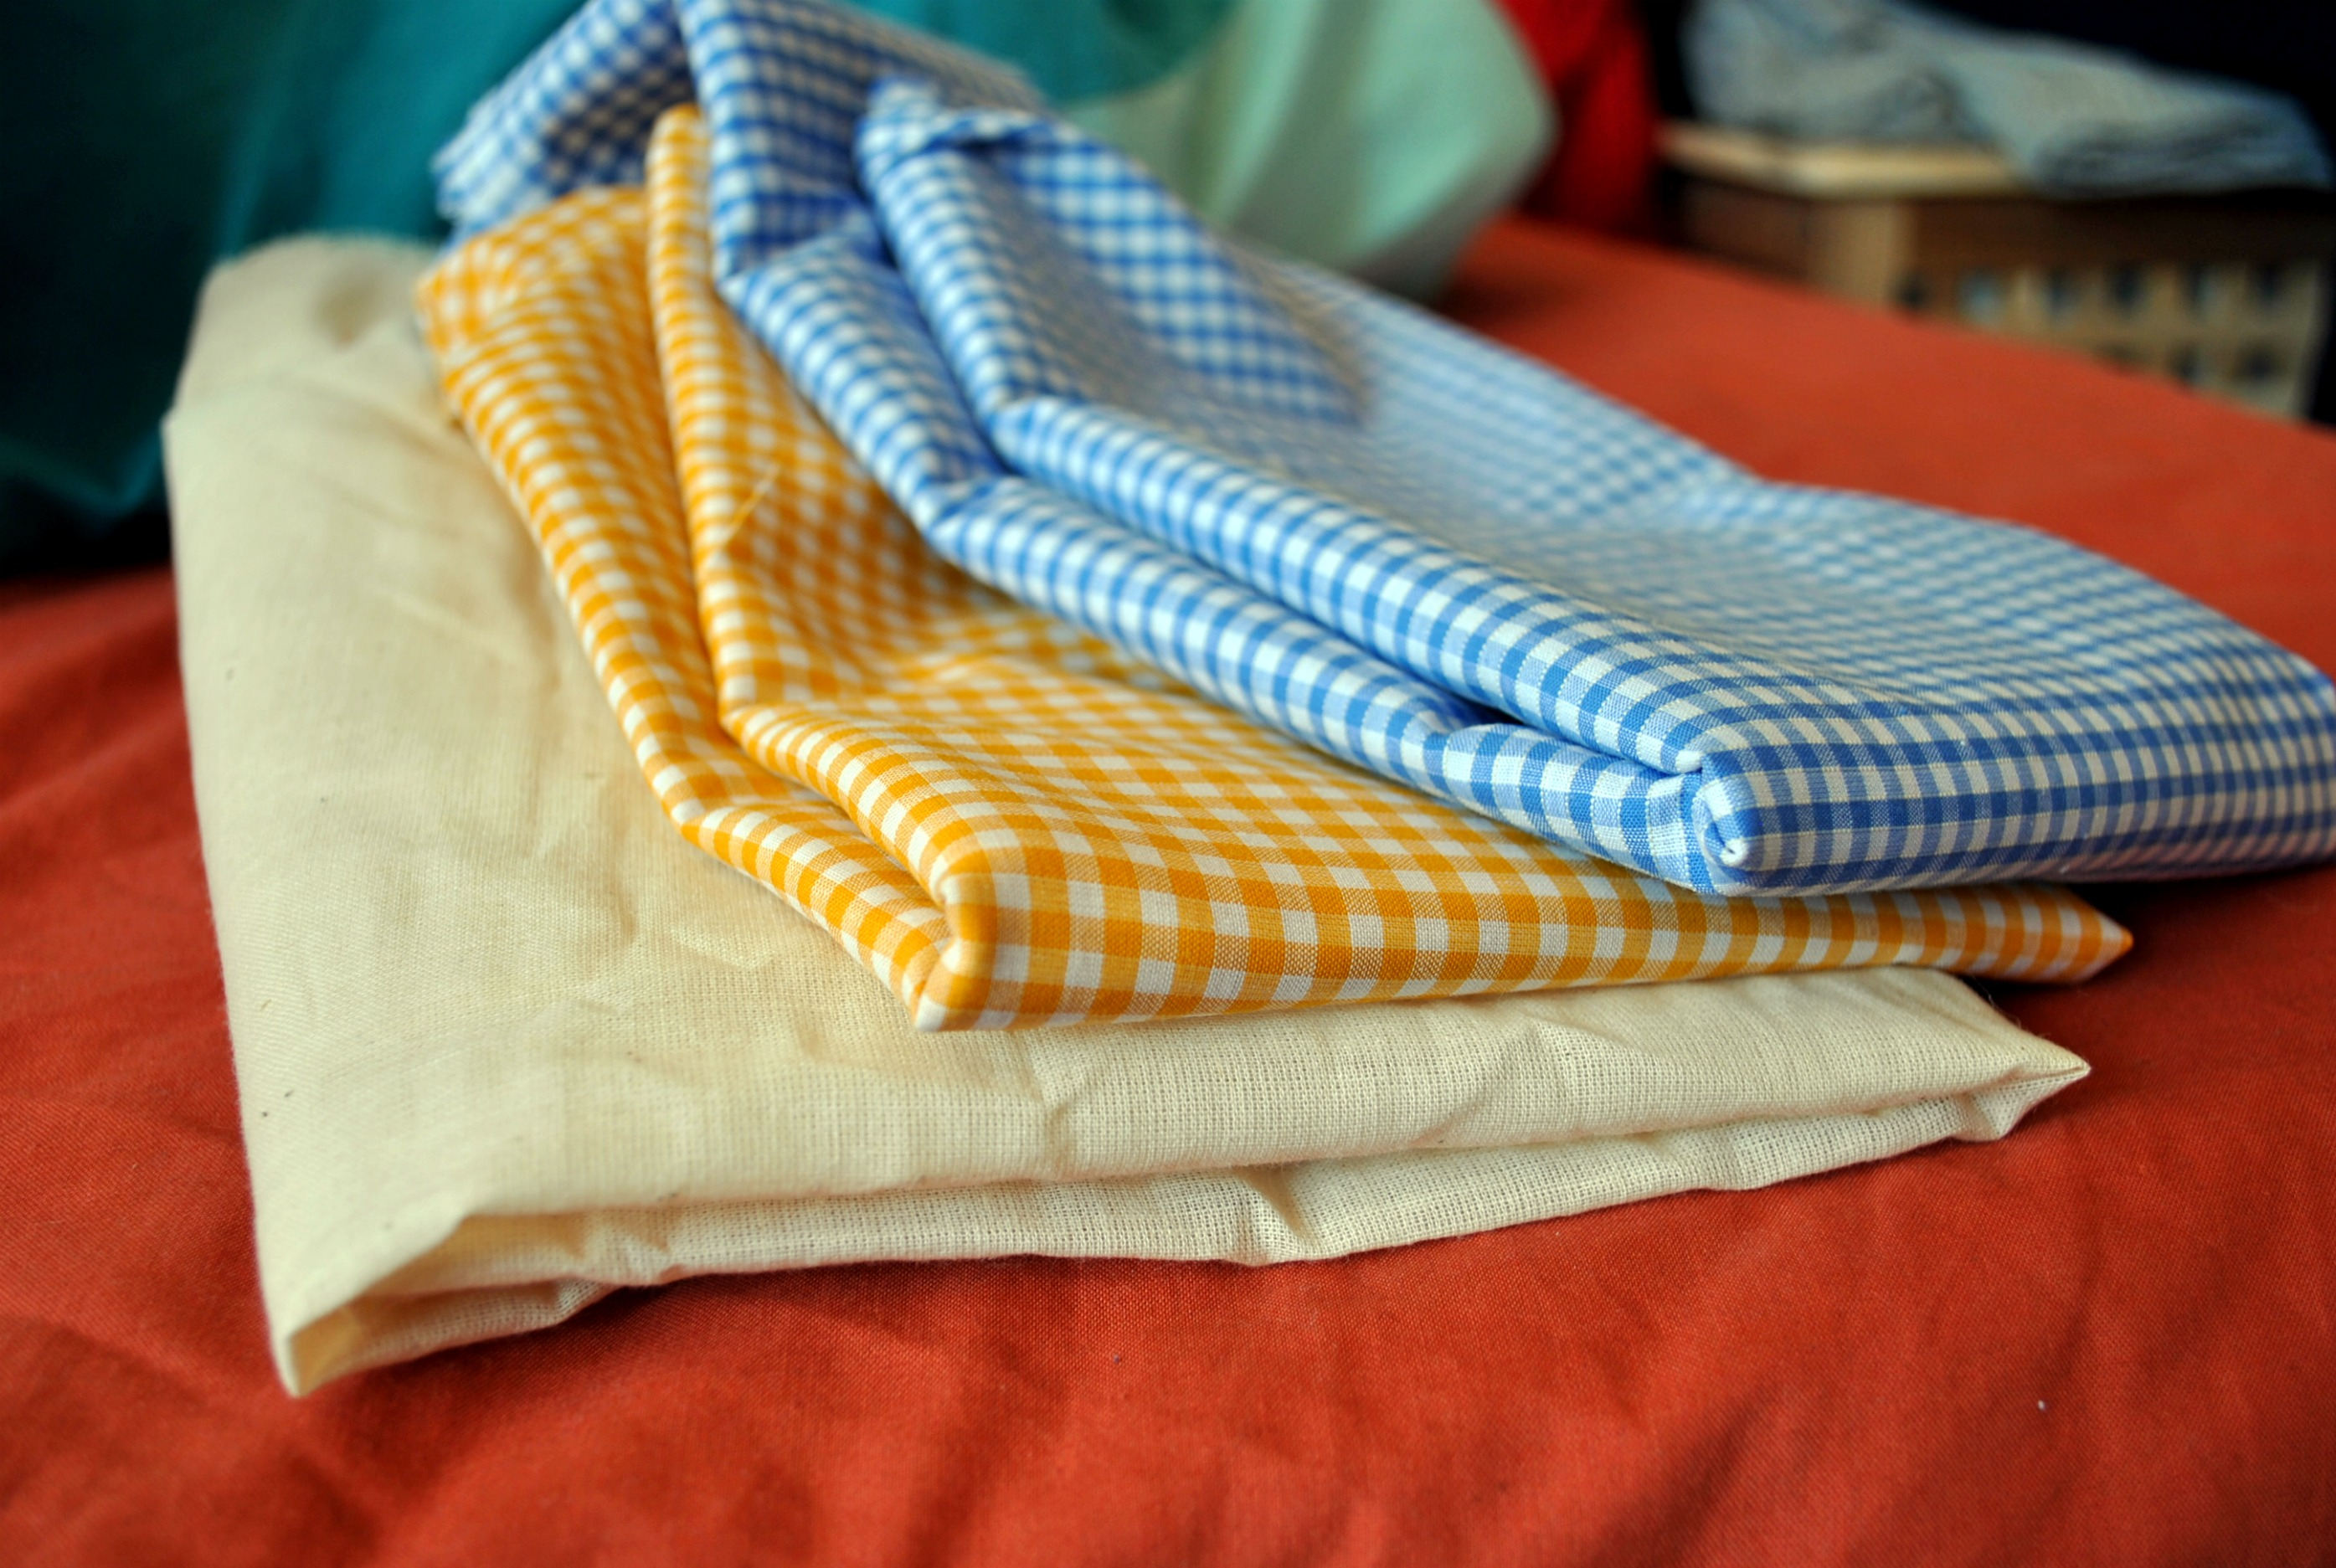 Burp cloths tutorial a little bit of nonsense i made three burp cloths two yellow and one blue this tutorial will give directions for one cloth just to keep it easy baditri Image collections